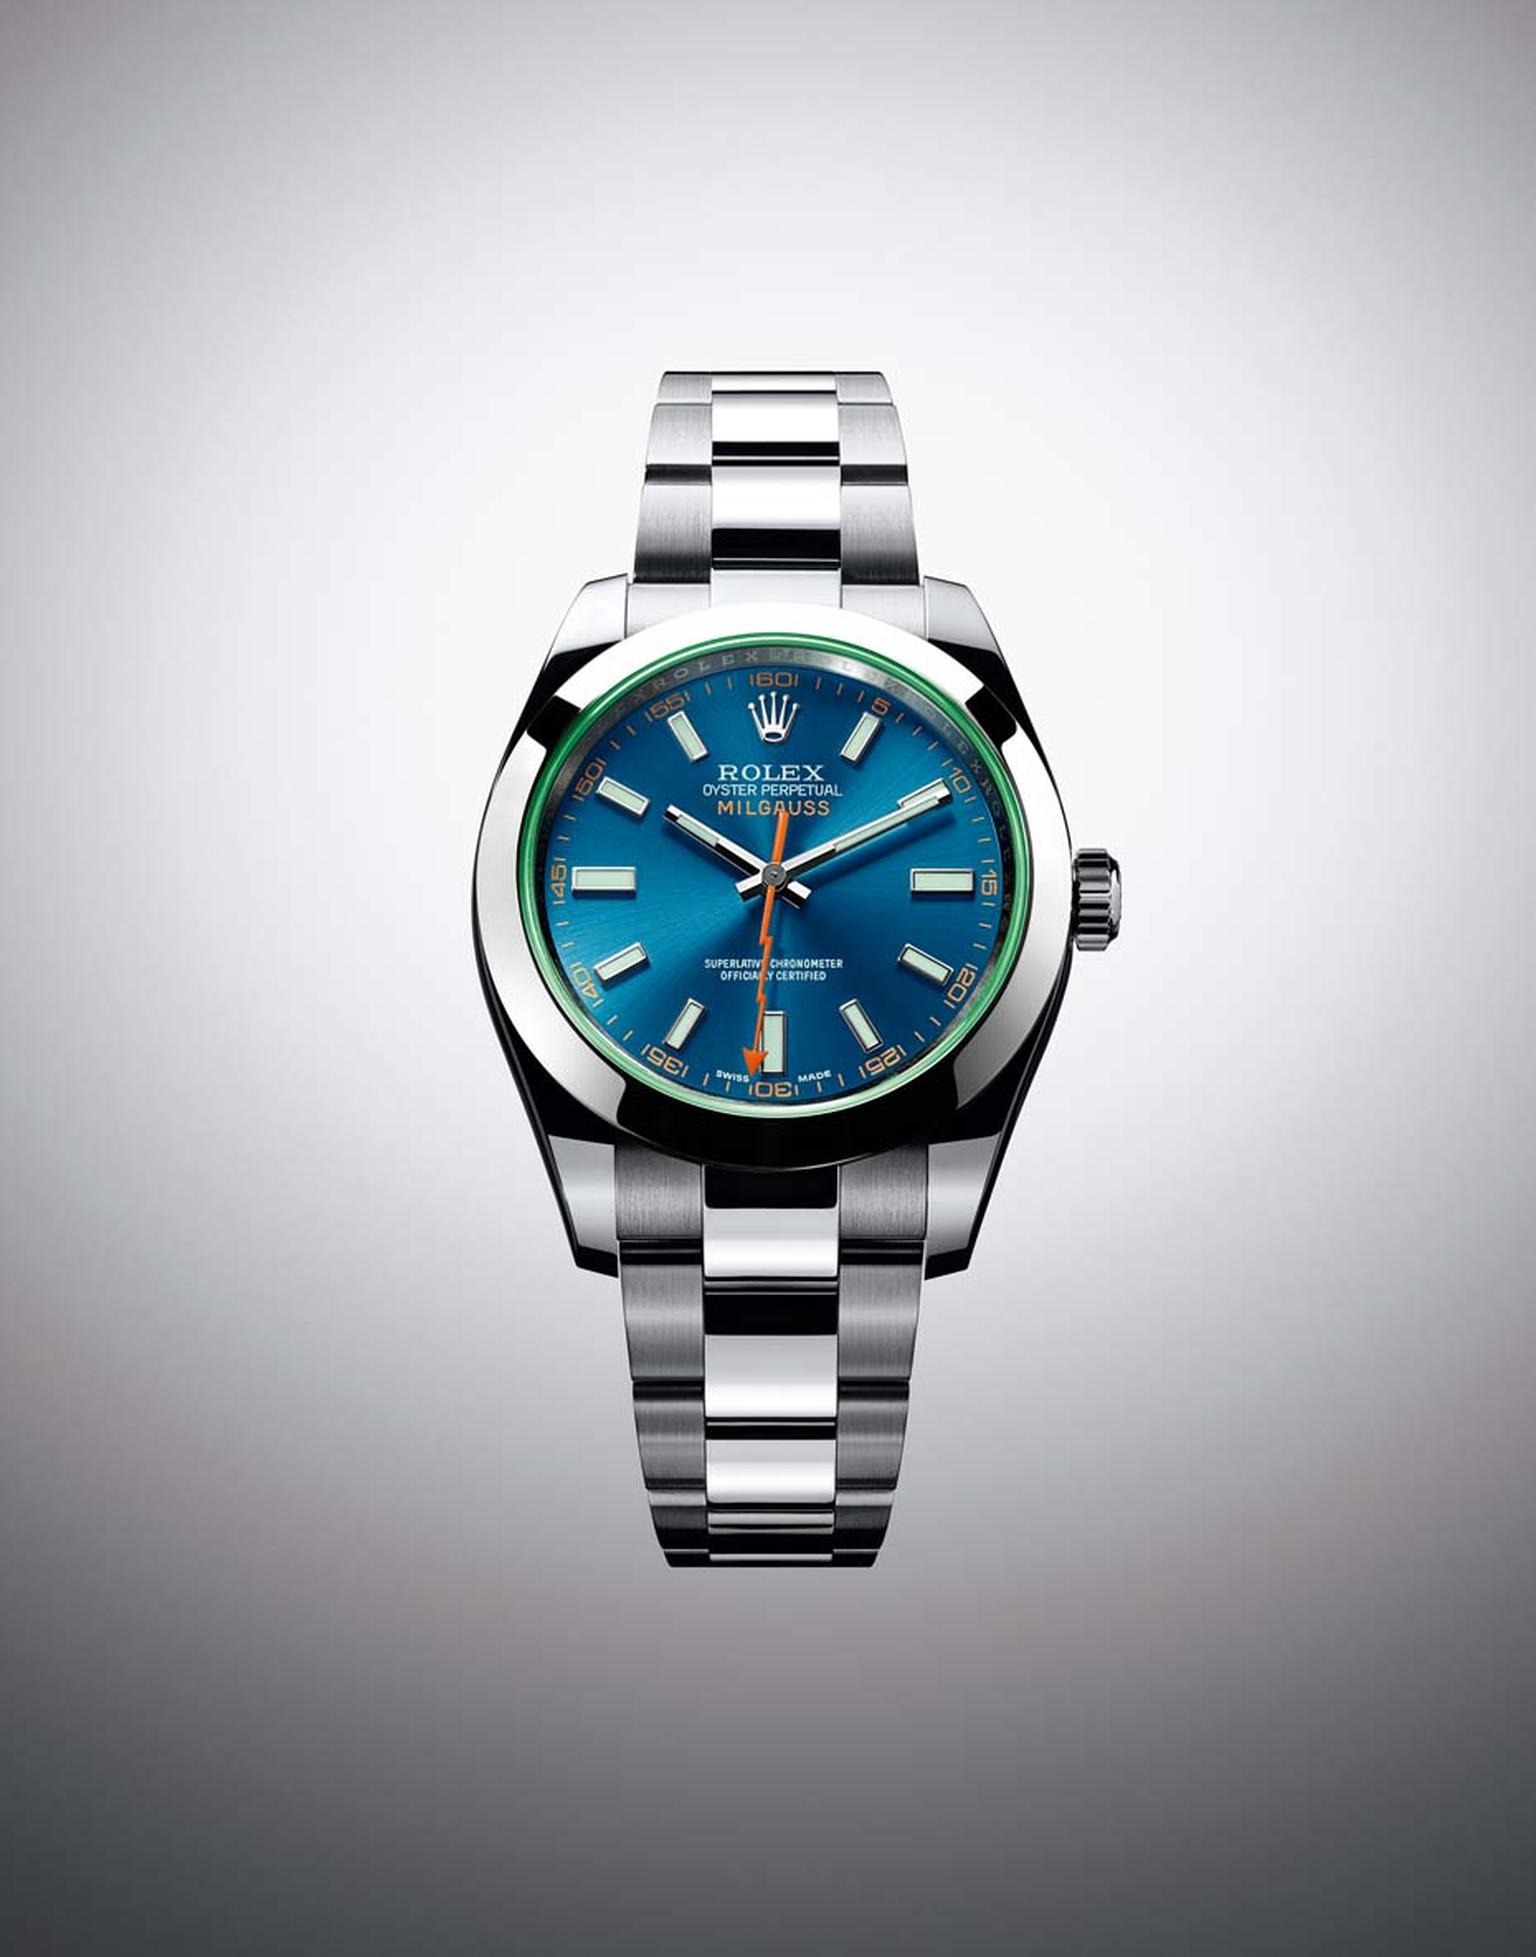 The new Rolex Milgauss Z-blue watch, with its distinctive turquoise dial, has the same technical specs as previous Rolex Milgauss watches, including a 904L stainless steel superalloy case and an antimagnetic shield that protects the automatic movement fro